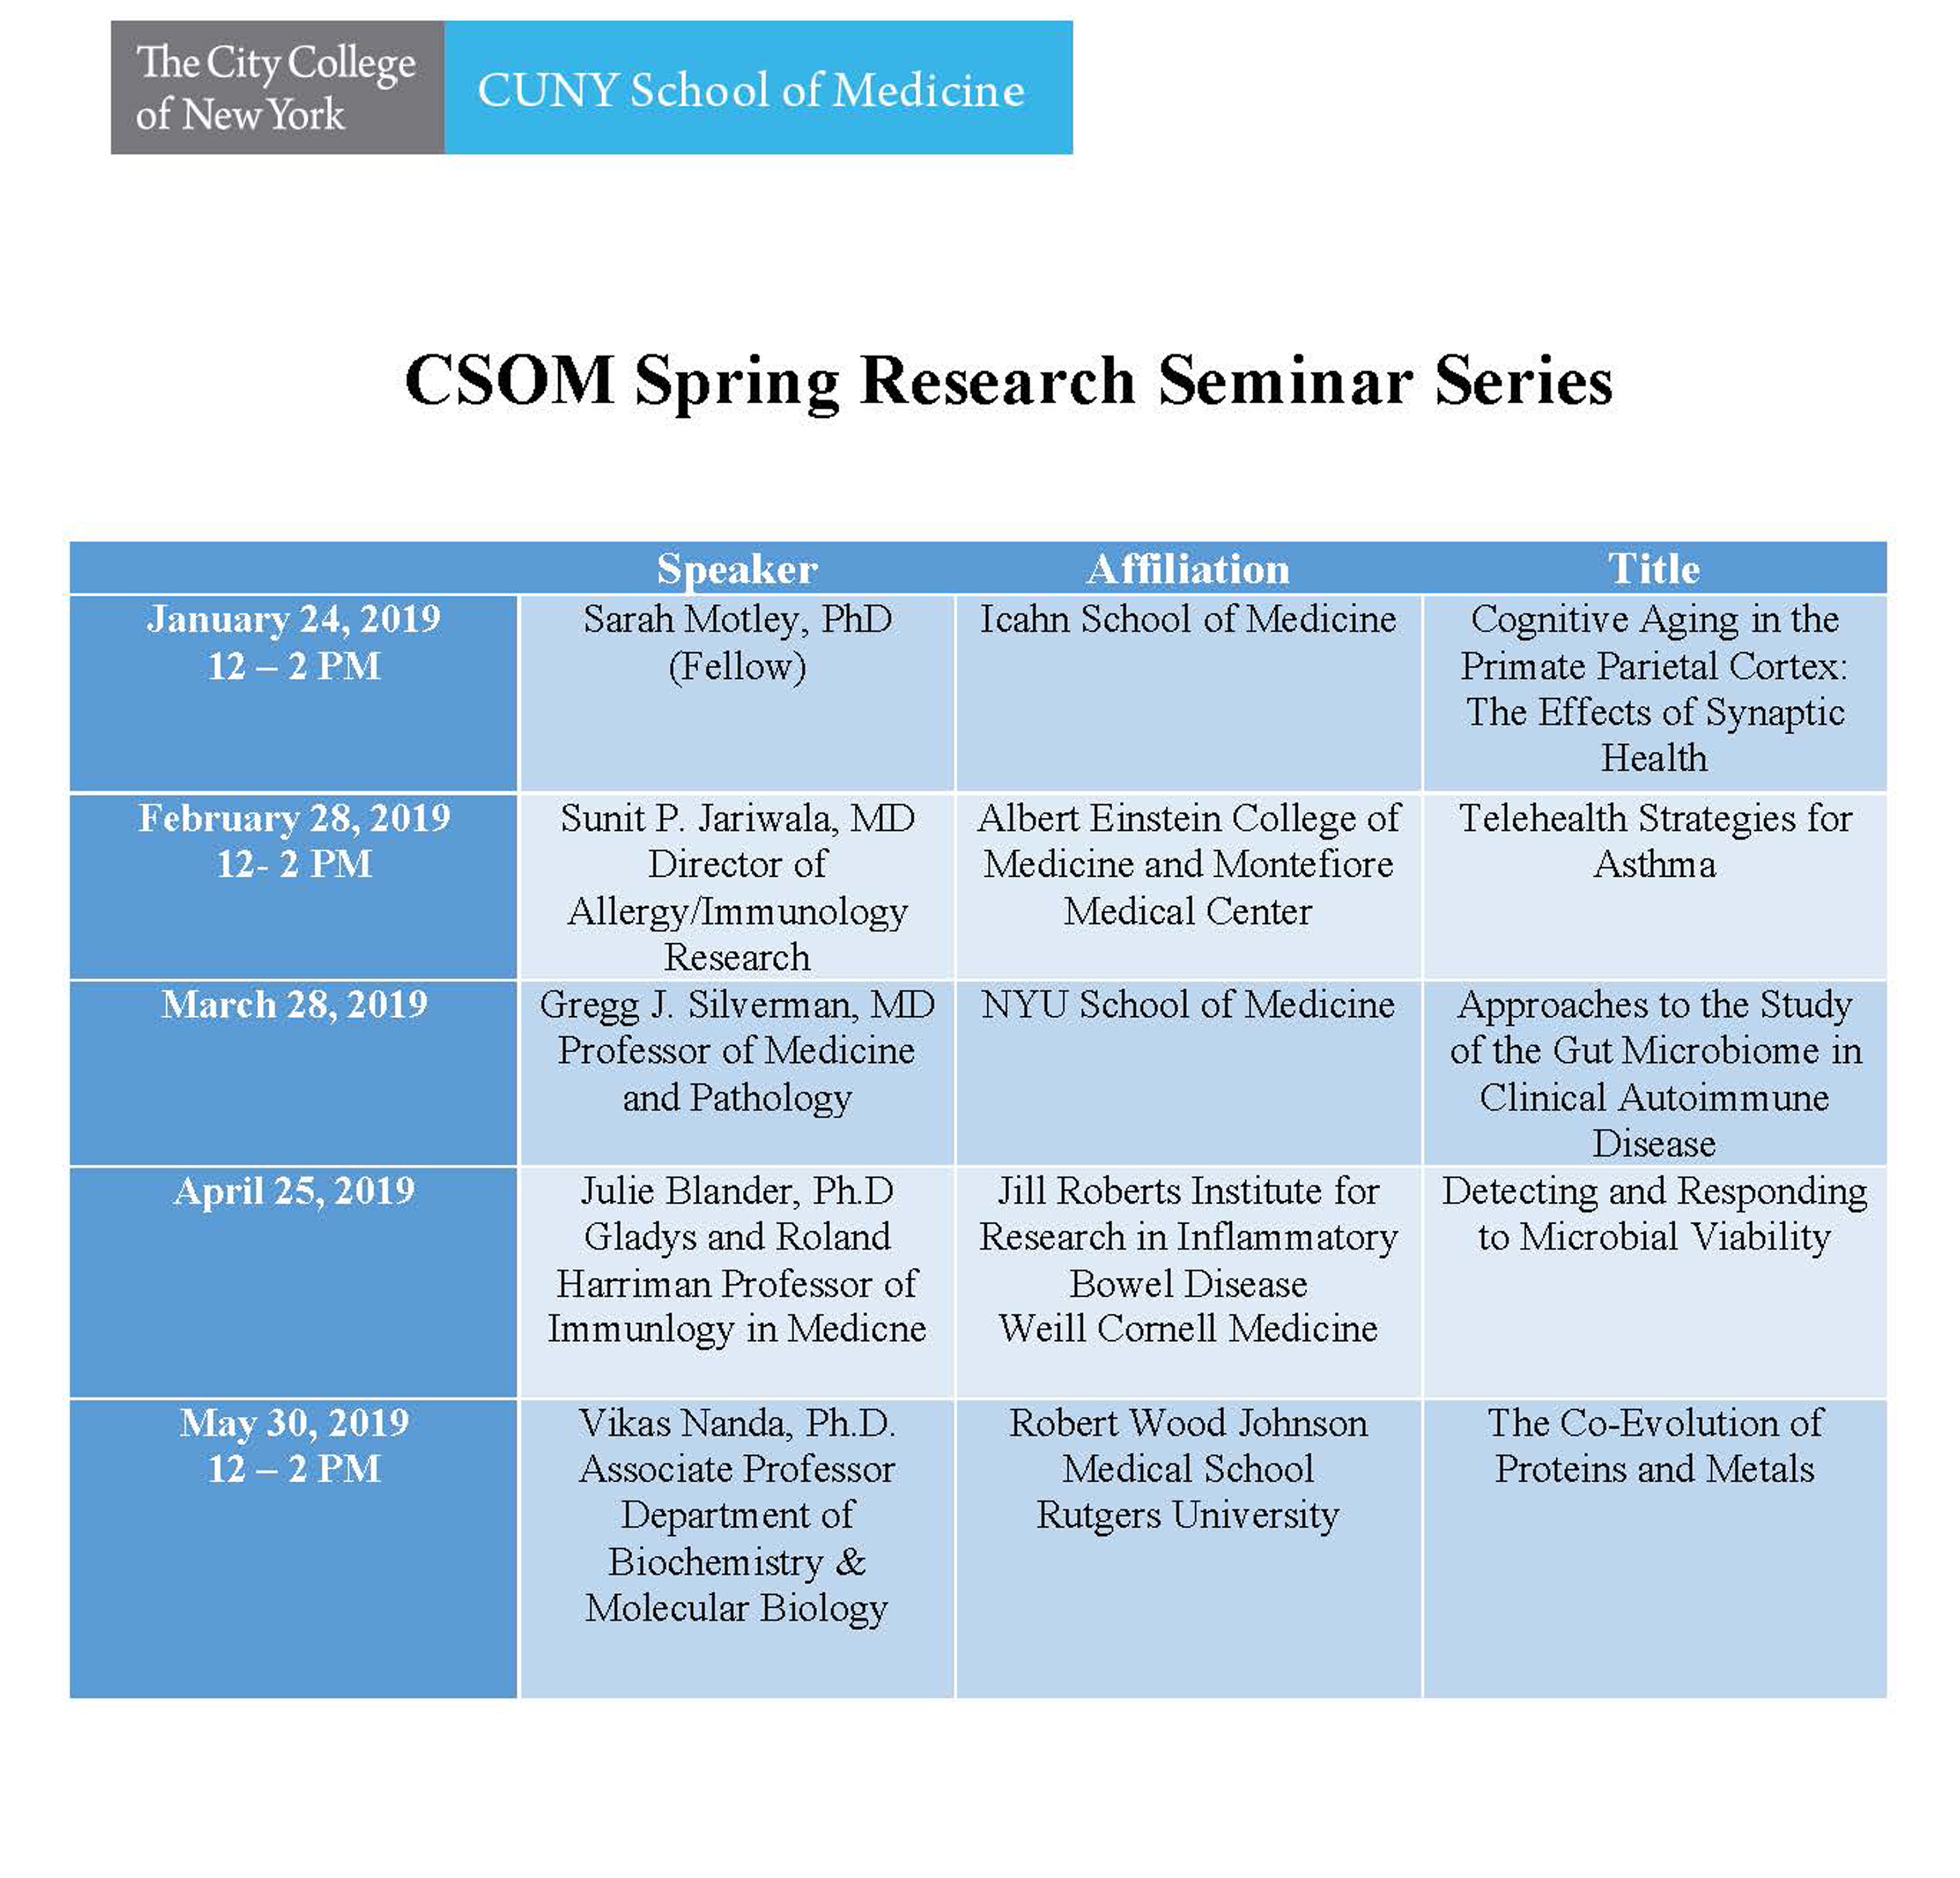 CSOM Spring Research Seminar Series  - Click Image for Screen Readable Schedule